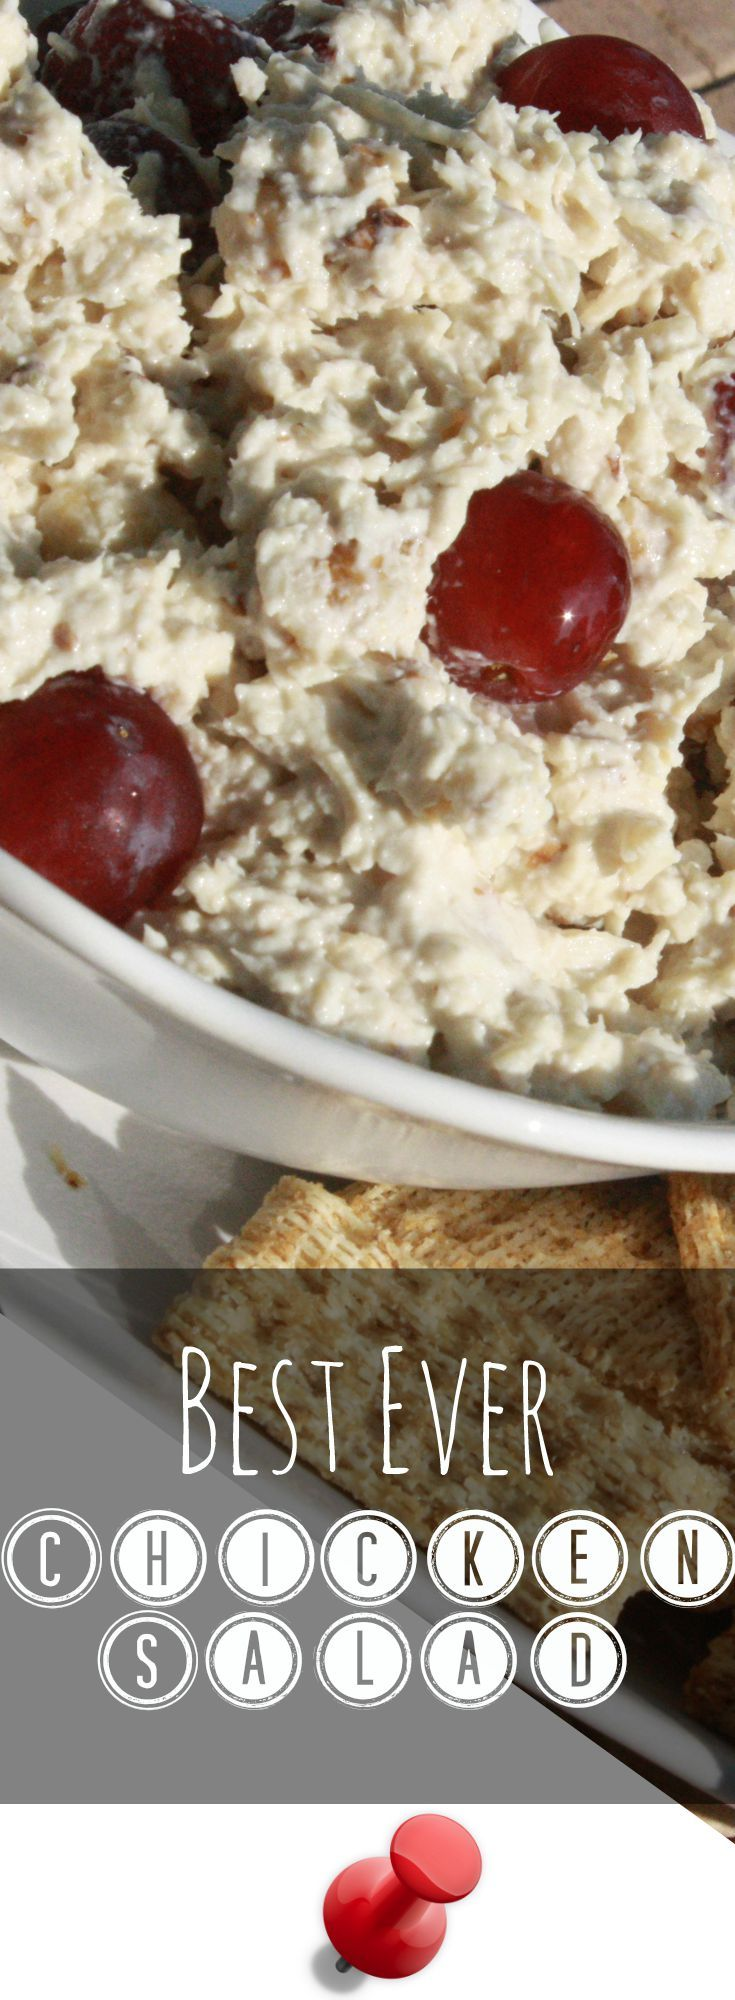 Get the best ever Chicken Salad recipe from Coupon Cravings! This recipe makes a superb chicken salad sandwich as well as a great dip! http://couponcravings.com/best-ever-chicken-salad/